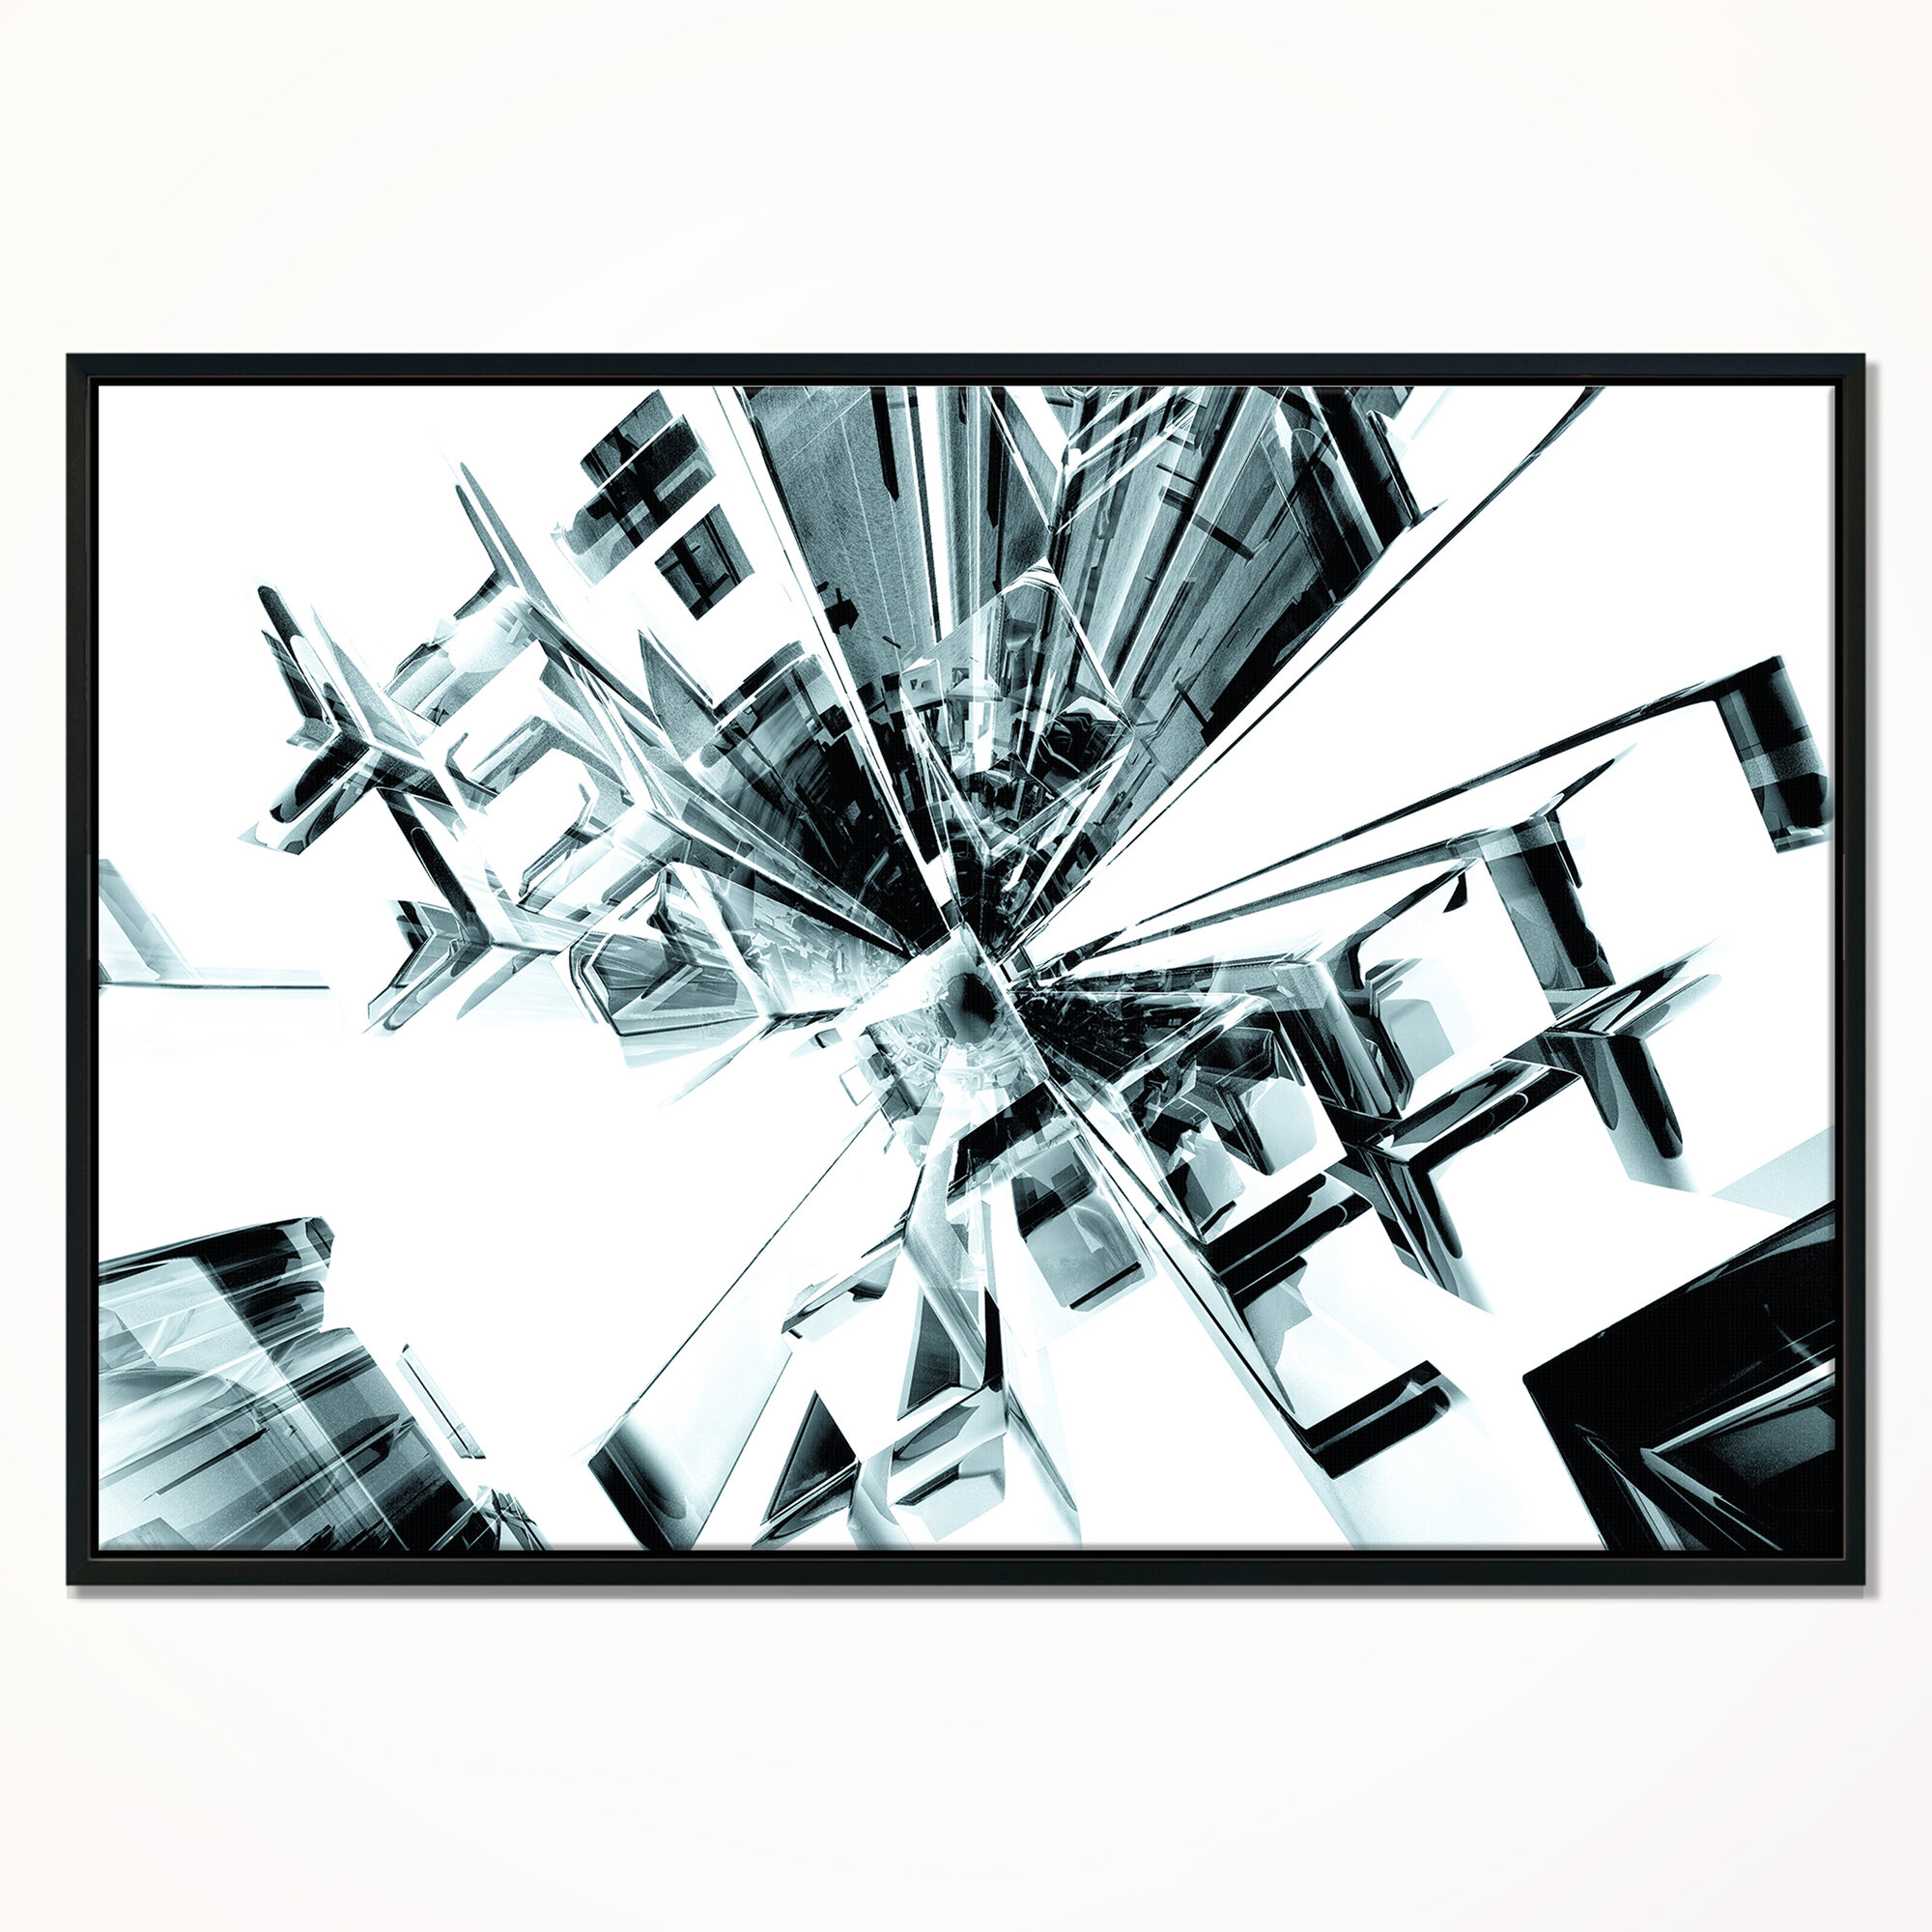 East Urban Home Abstract Fractal 3d Cubes Everywhere Framed Graphic Art Print On Wrapped Canvas Wayfair